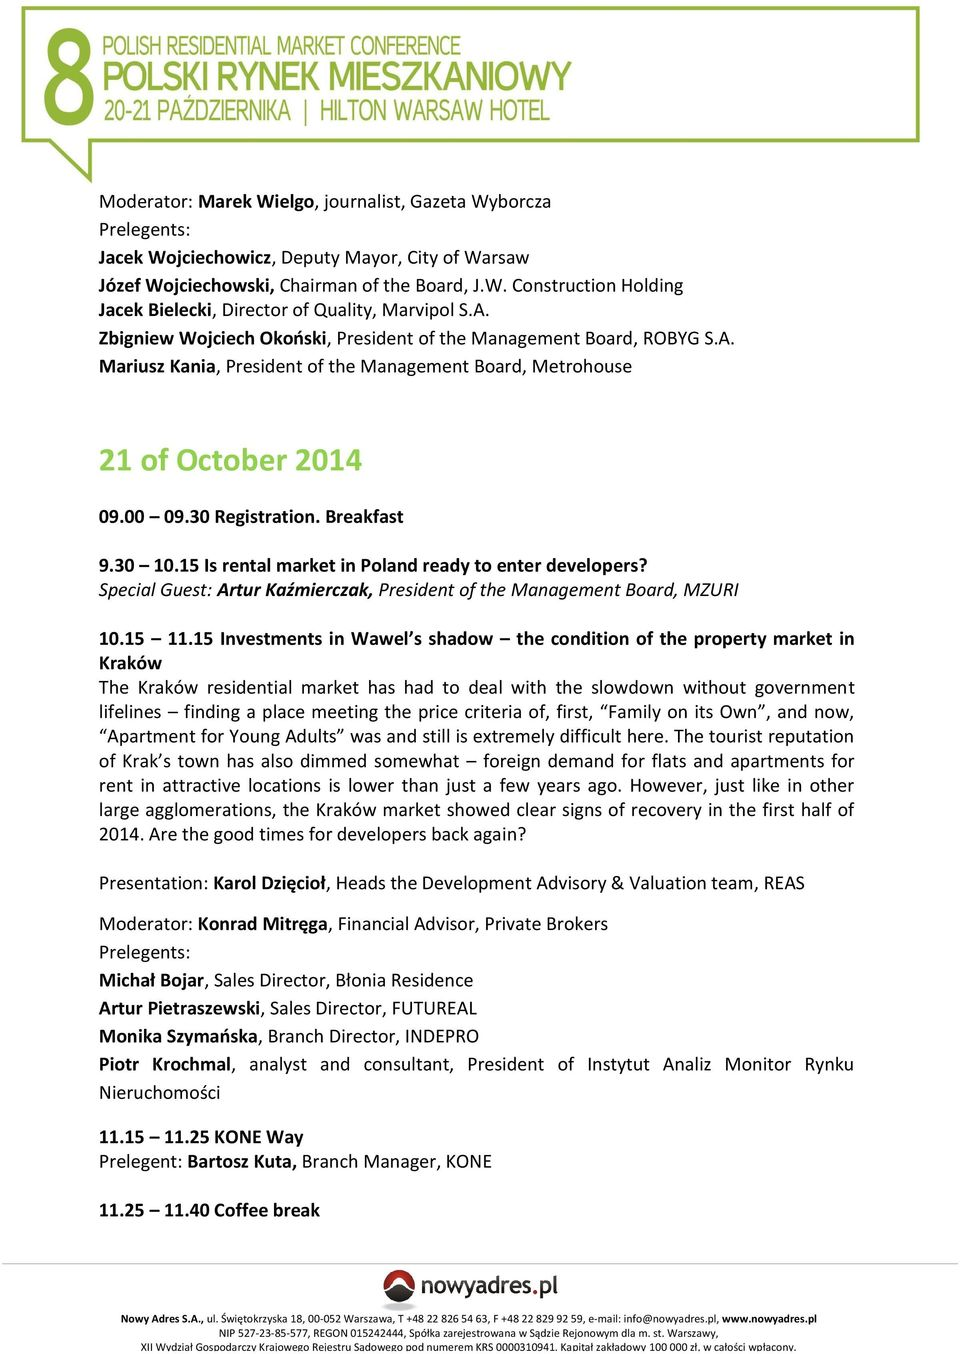 15 Is rental market in Poland ready to enter developers? Special Guest: Artur Kaźmierczak, President of the Management Board, MZURI 10.15 11.